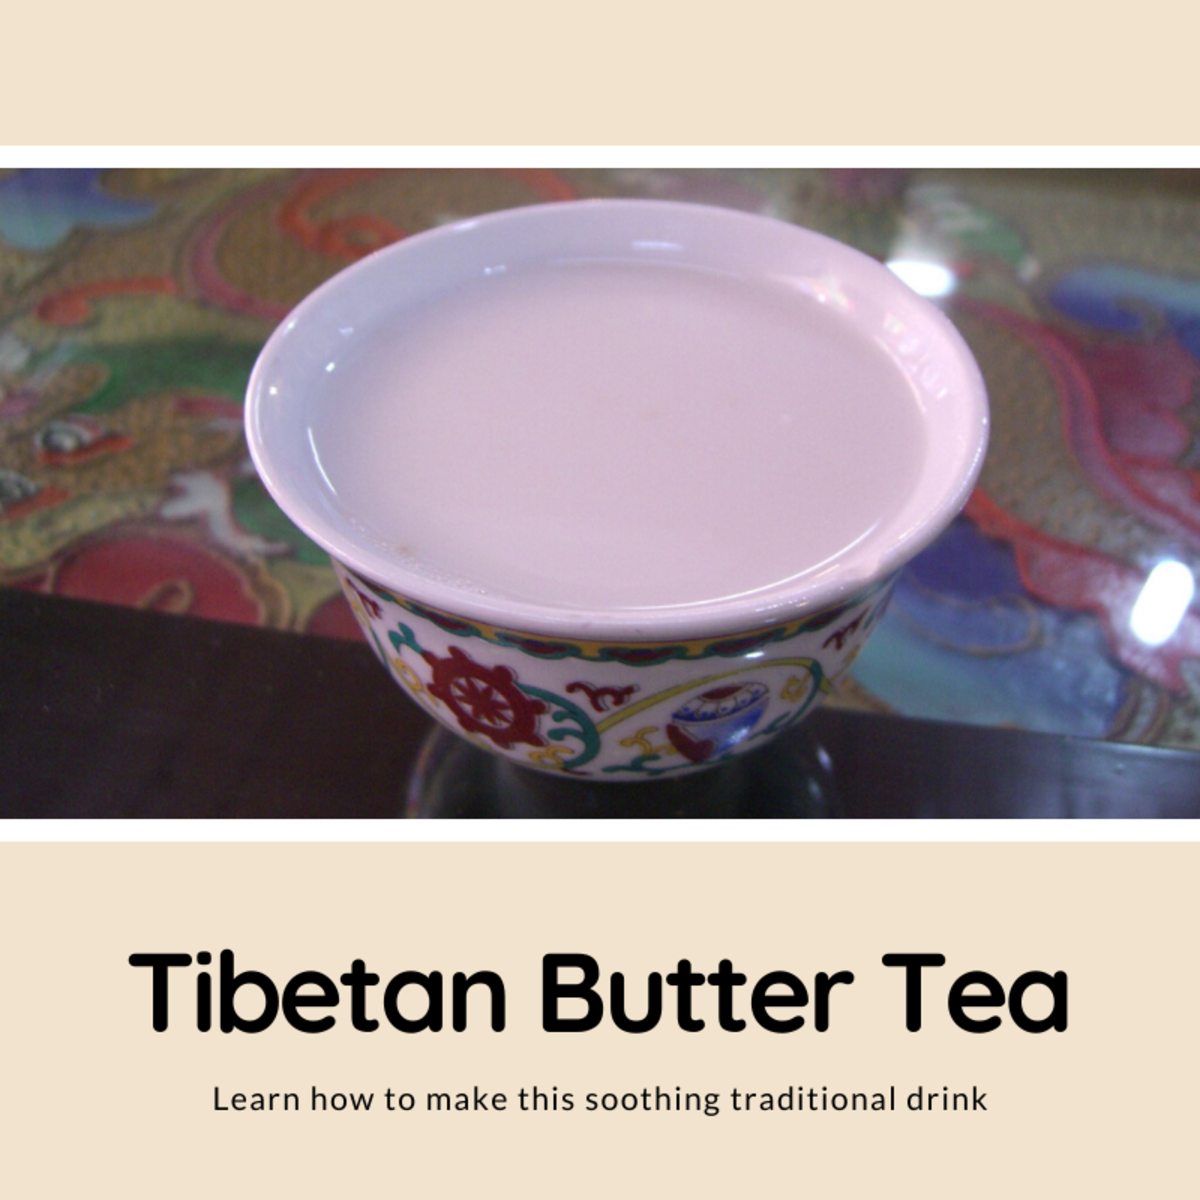 This article will show you how to make Tibetan butter tea, a warm, buttery, and salty drink.